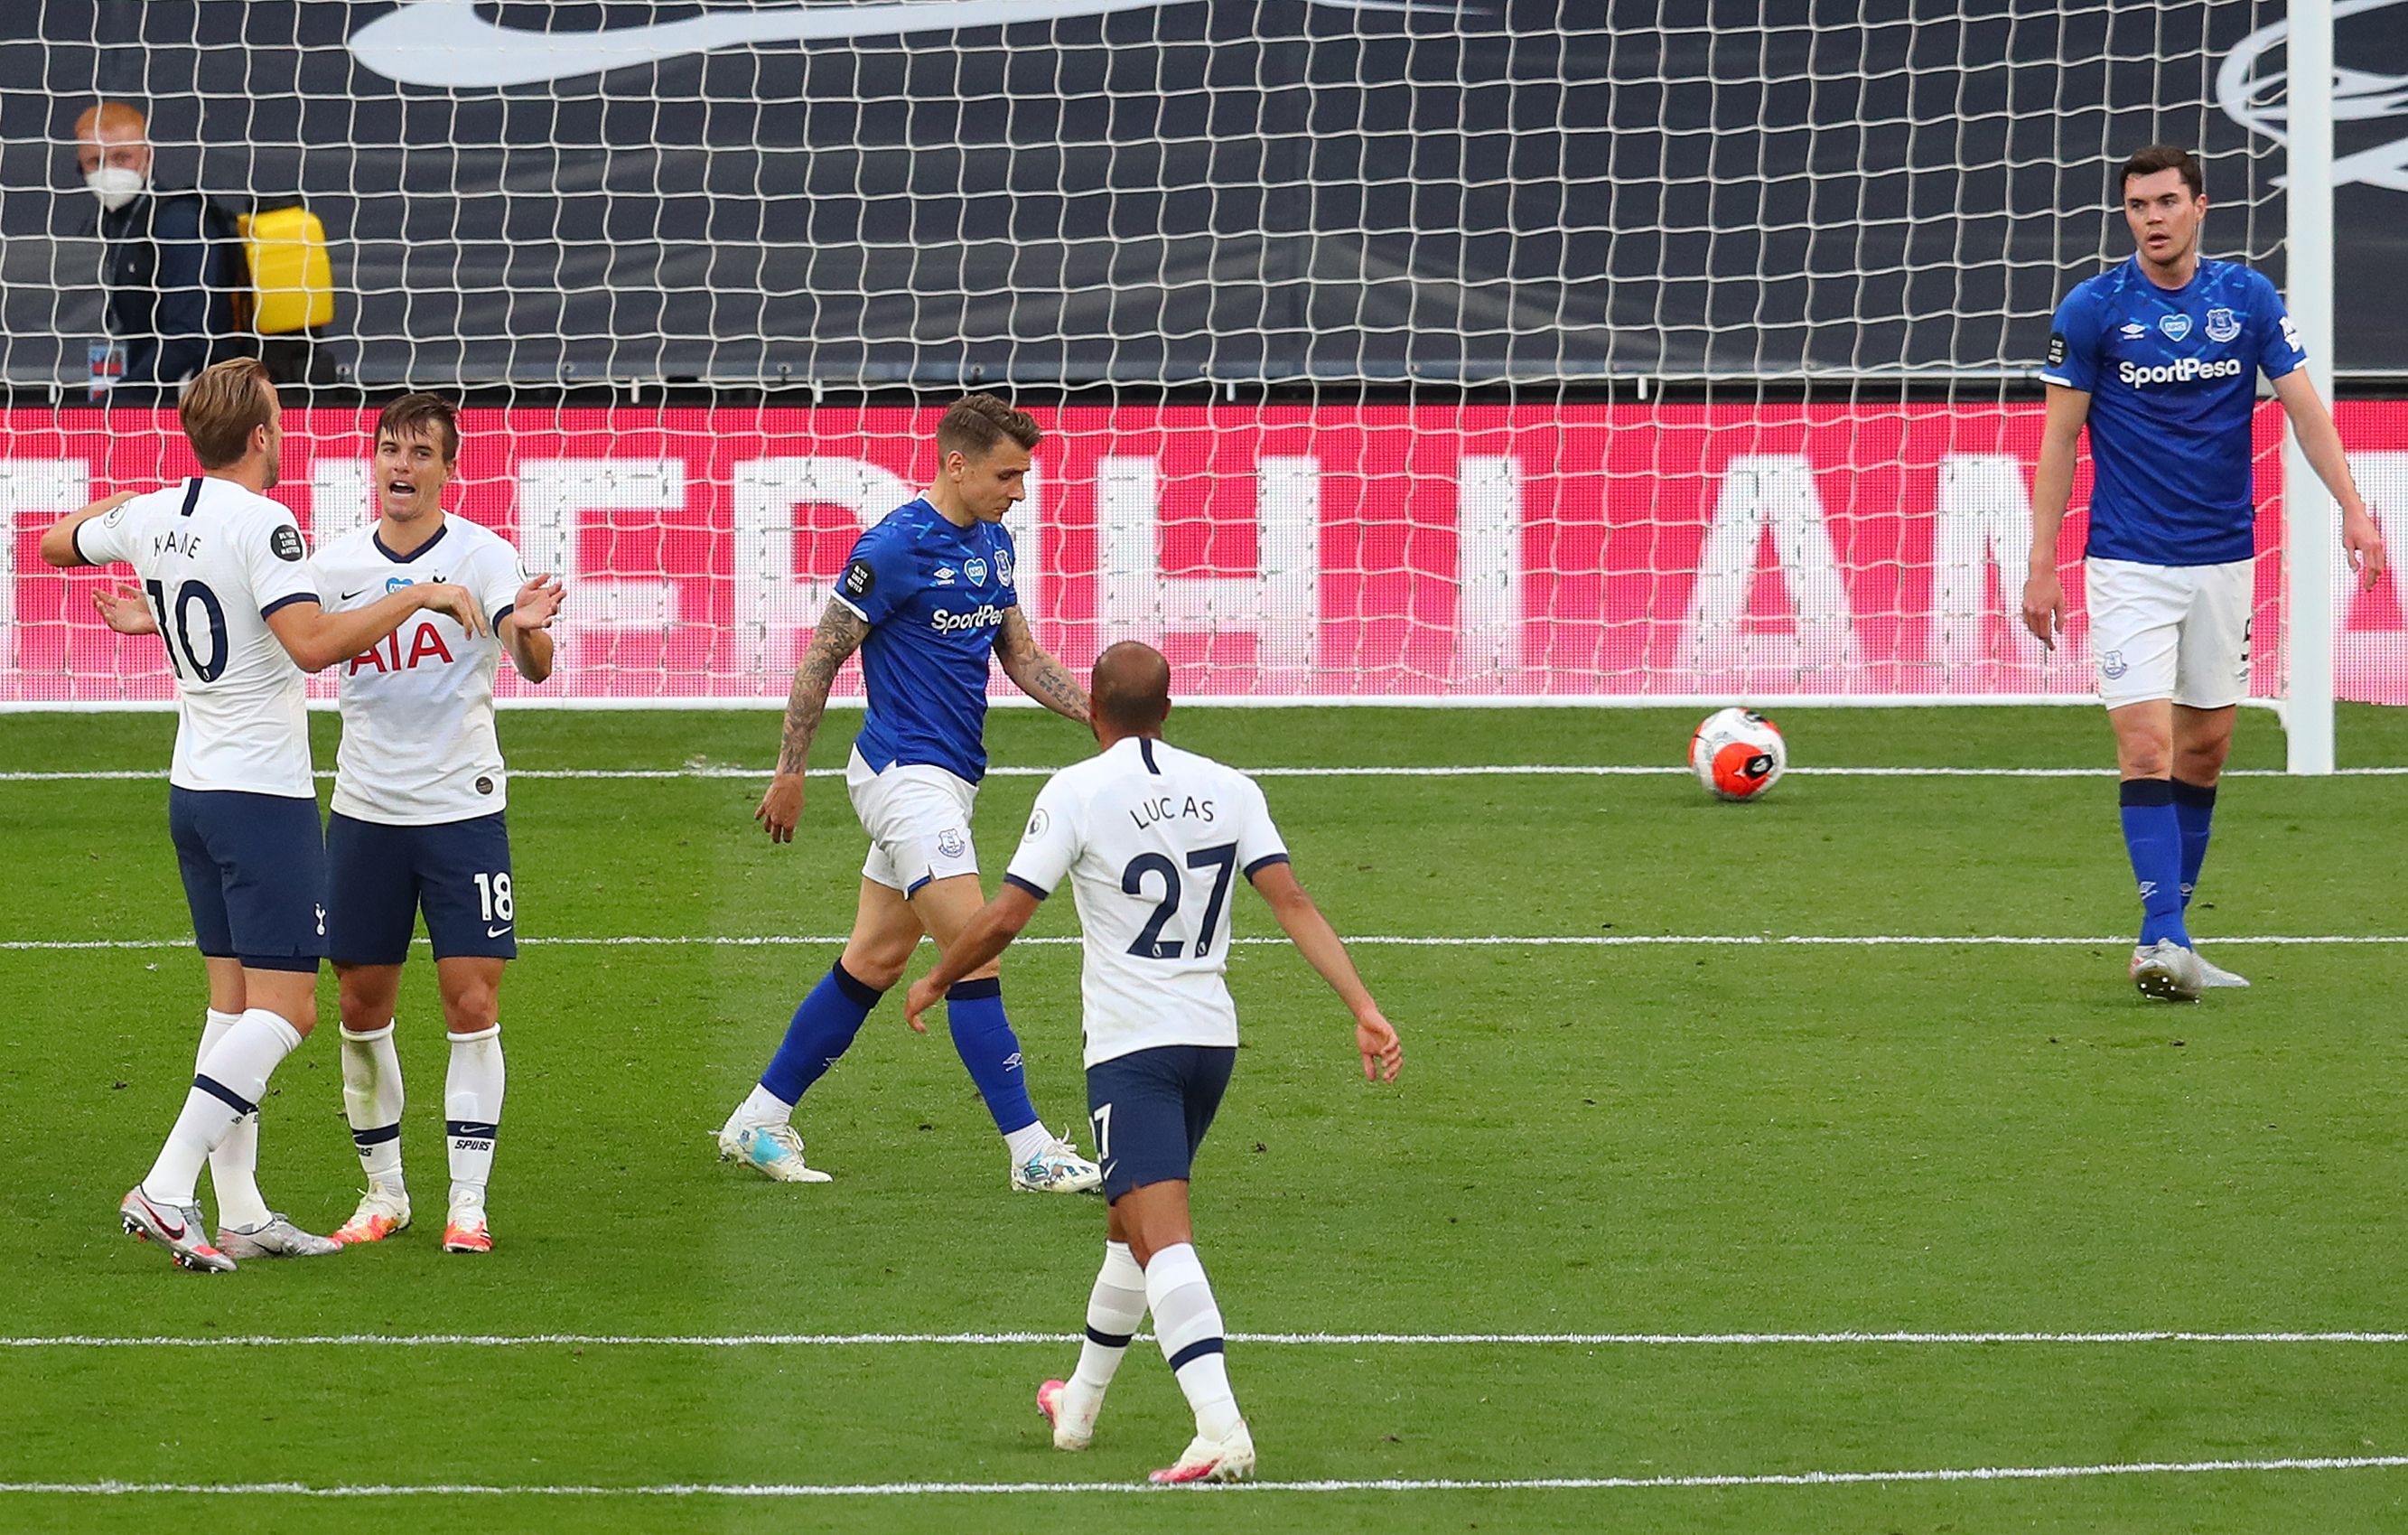 Everton players rated vs Tottenham Hotspur (Everton's Michael Keane seen dejected in the picture)